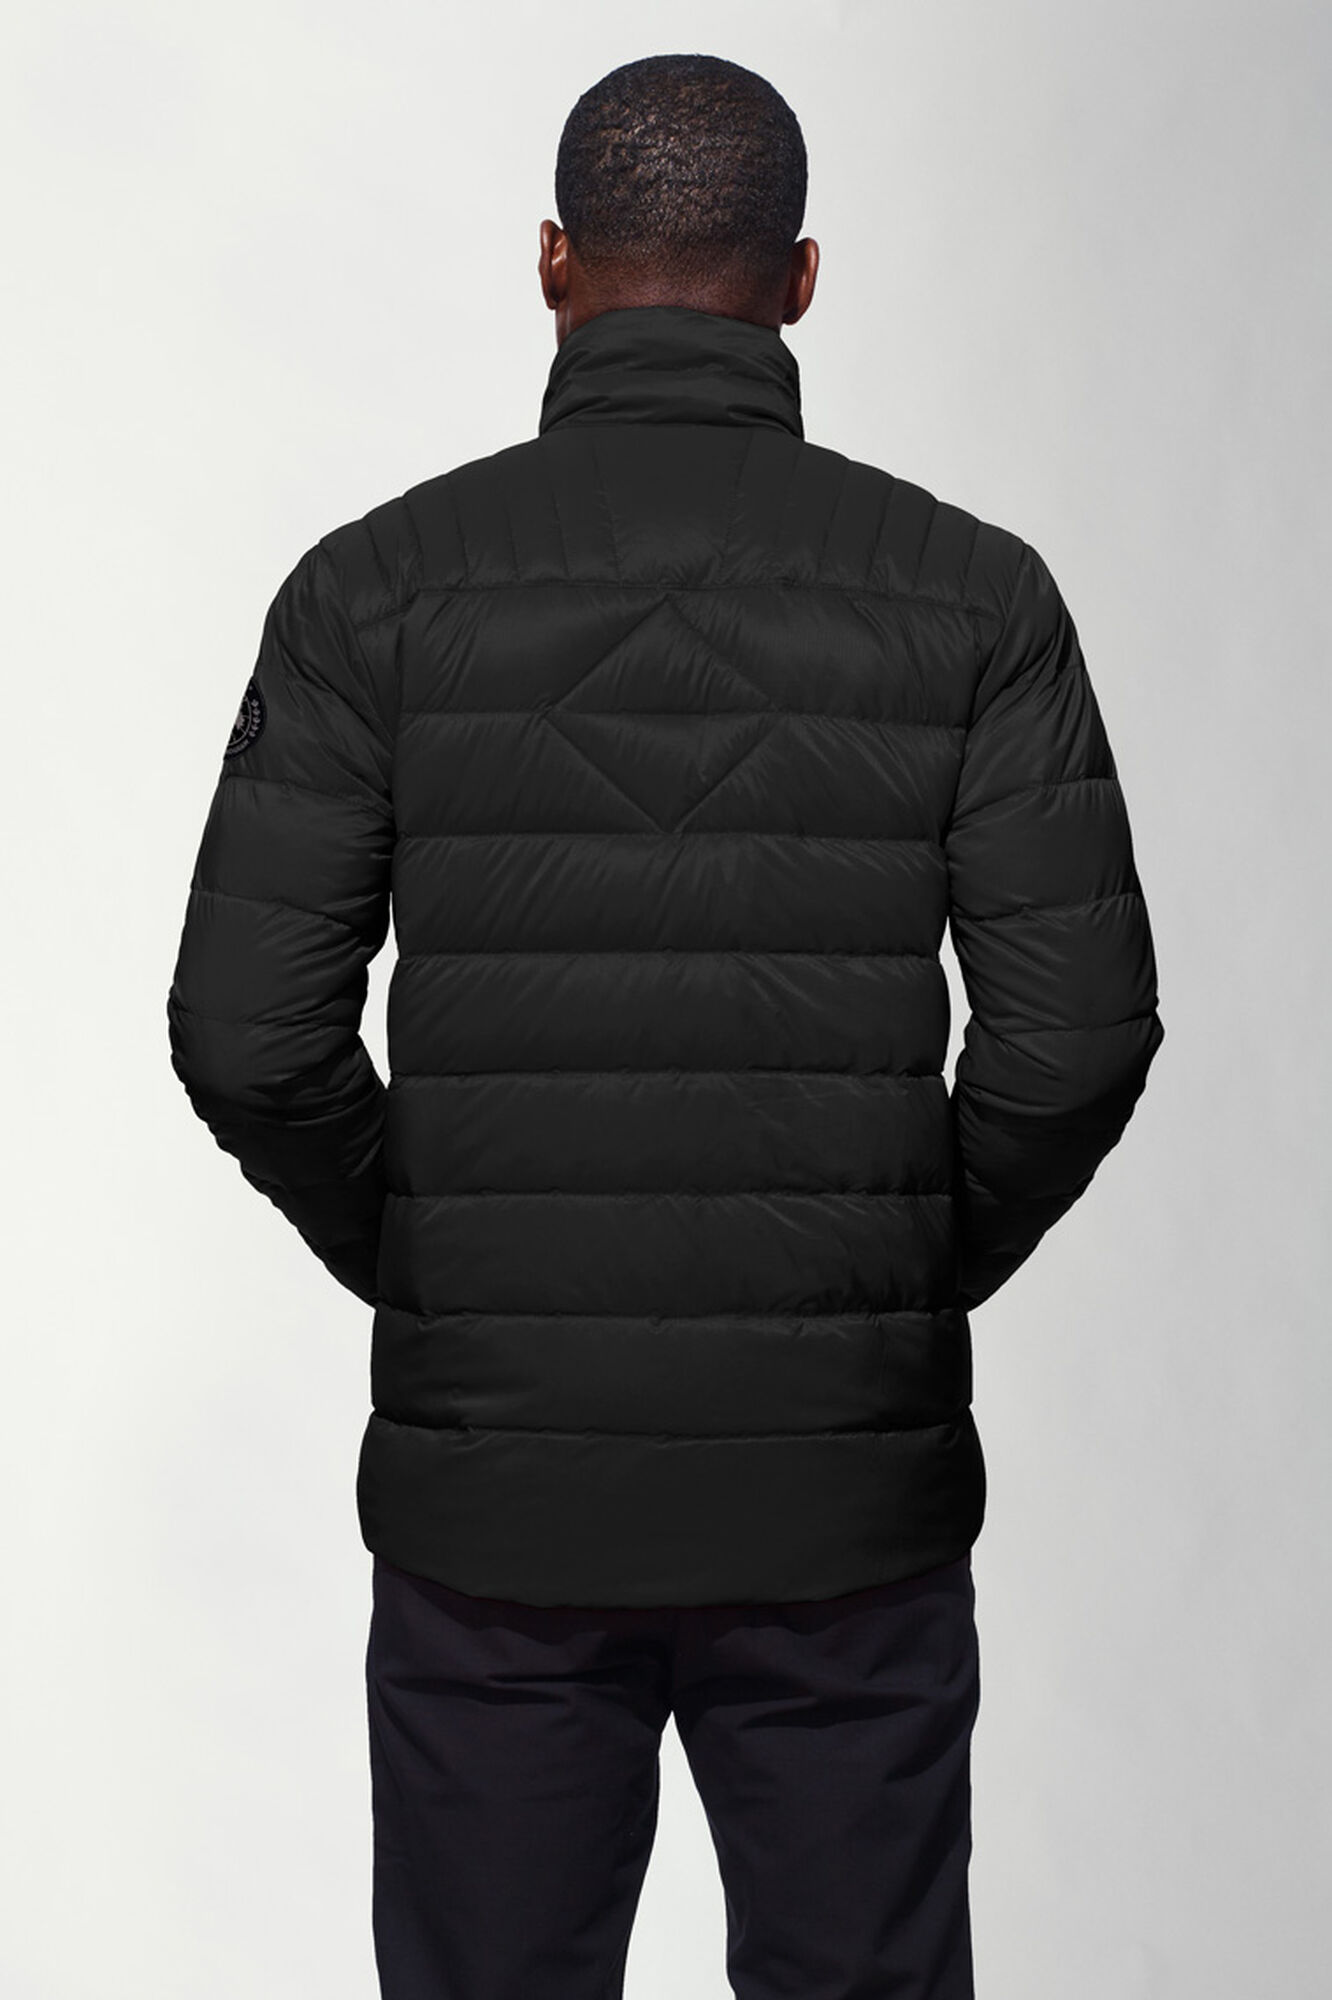 Canada Goose Lodge Down Hoody Black Label Canadagooseclearance